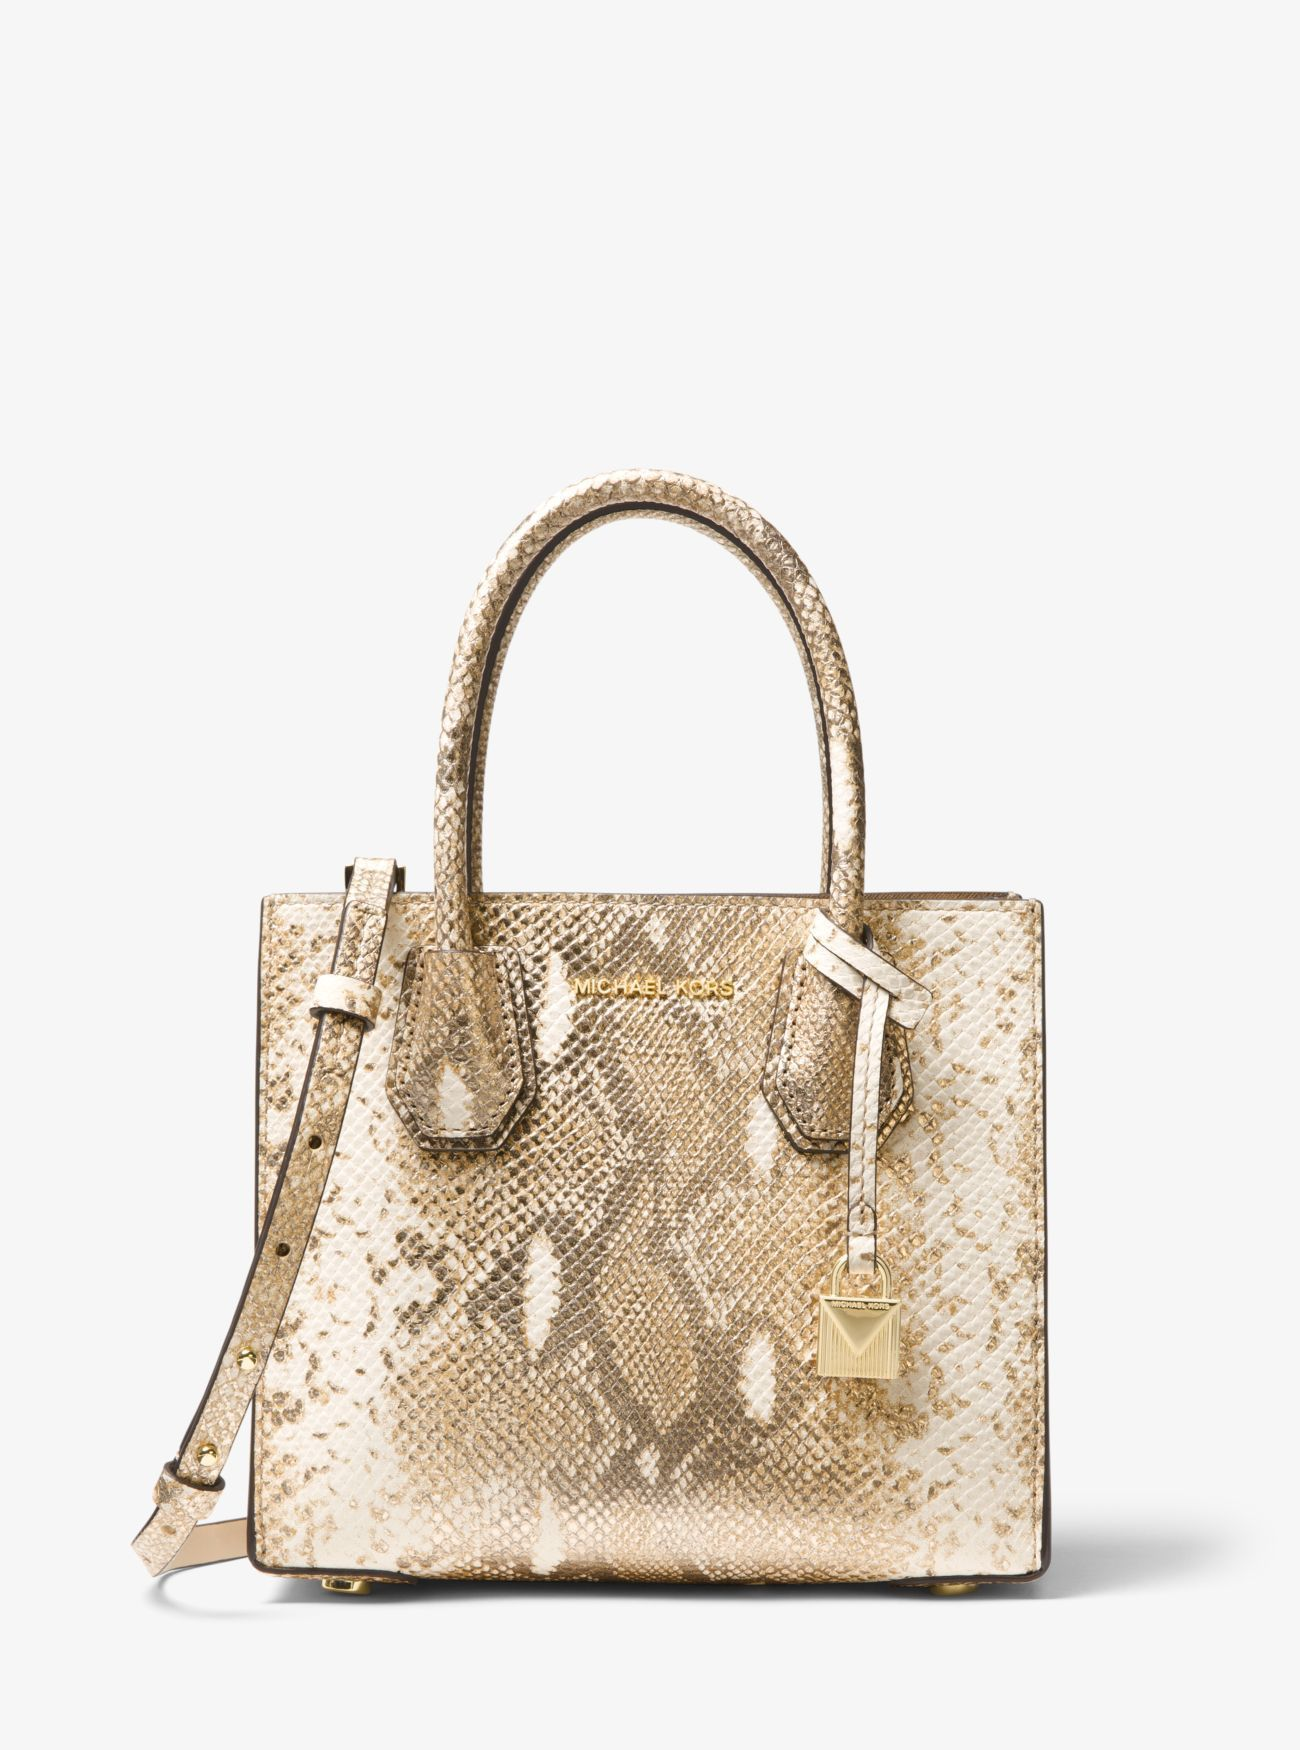 7c182c61d75ba1 Michael Kors Handbags Are on Up to 75% Off for a Labor Day Sale